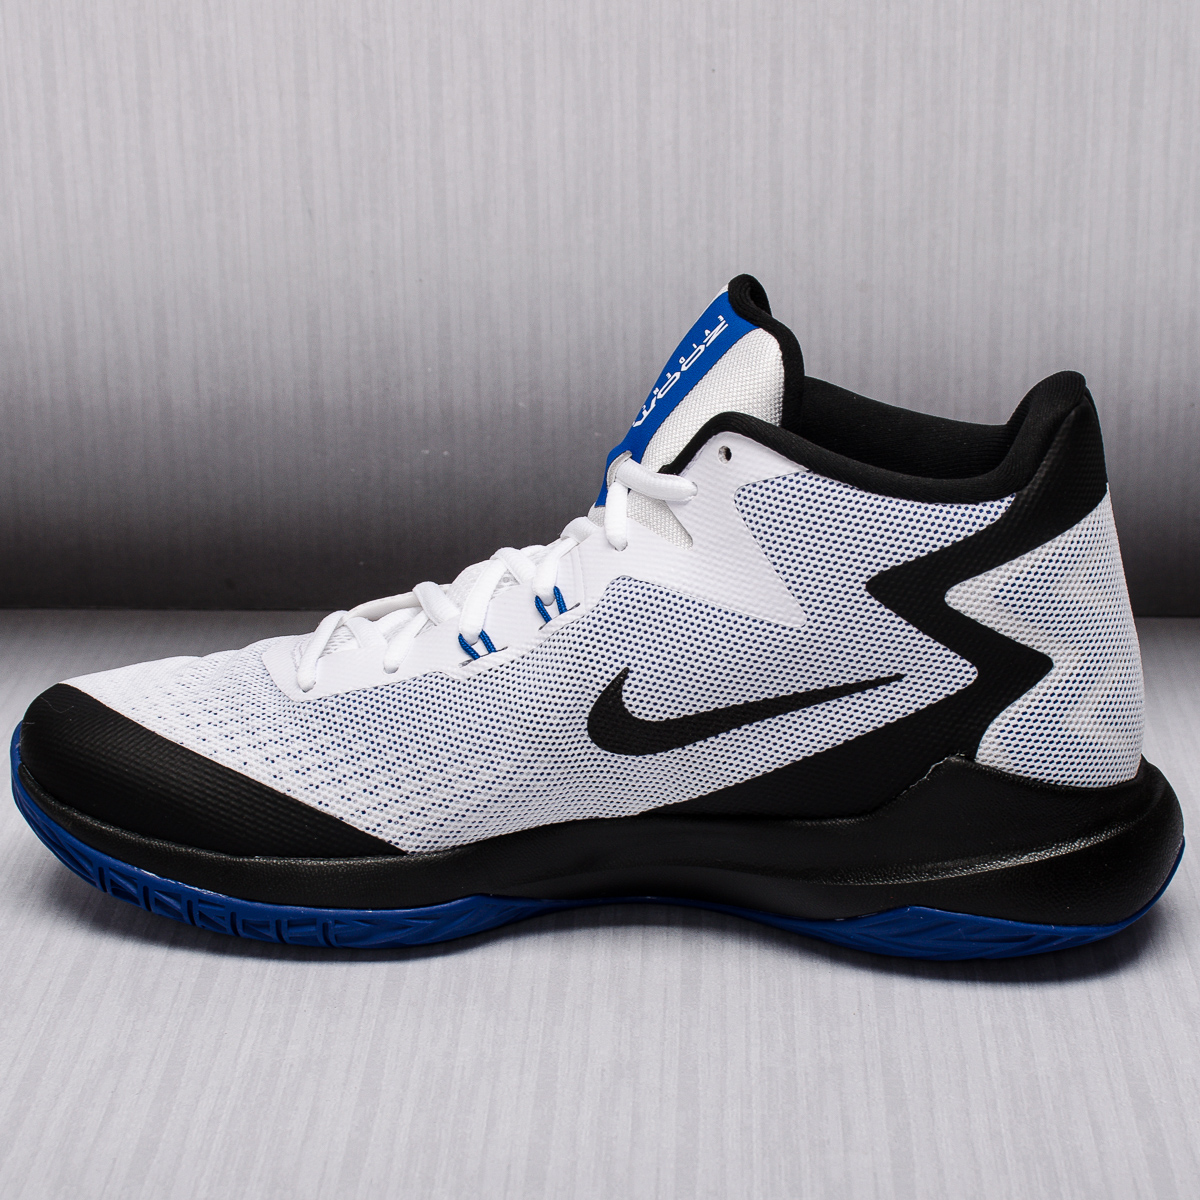 Nike Zoom Evidence Basketball Shoes - BASKETBALL SHOES ...